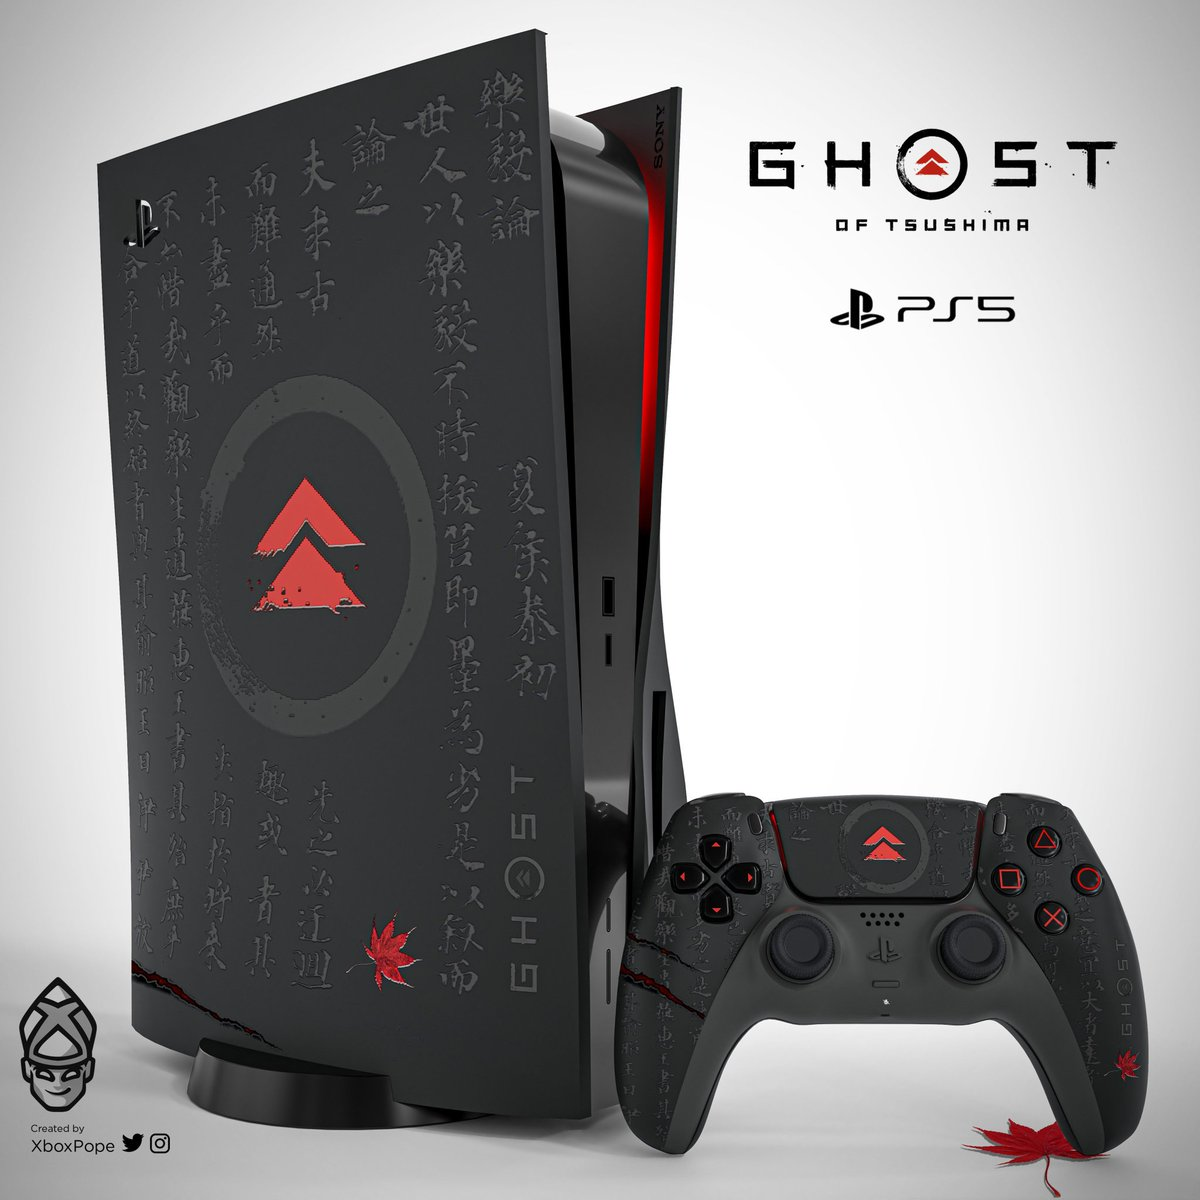 Akshay On Twitter Out Of All The Fanmade Playstation 5 Designs This Is My Fav One Credits Xboxpope Black Console Red Led Color Ghostoftsushima Ltd Ed Https T Co A3gzbfyjgy